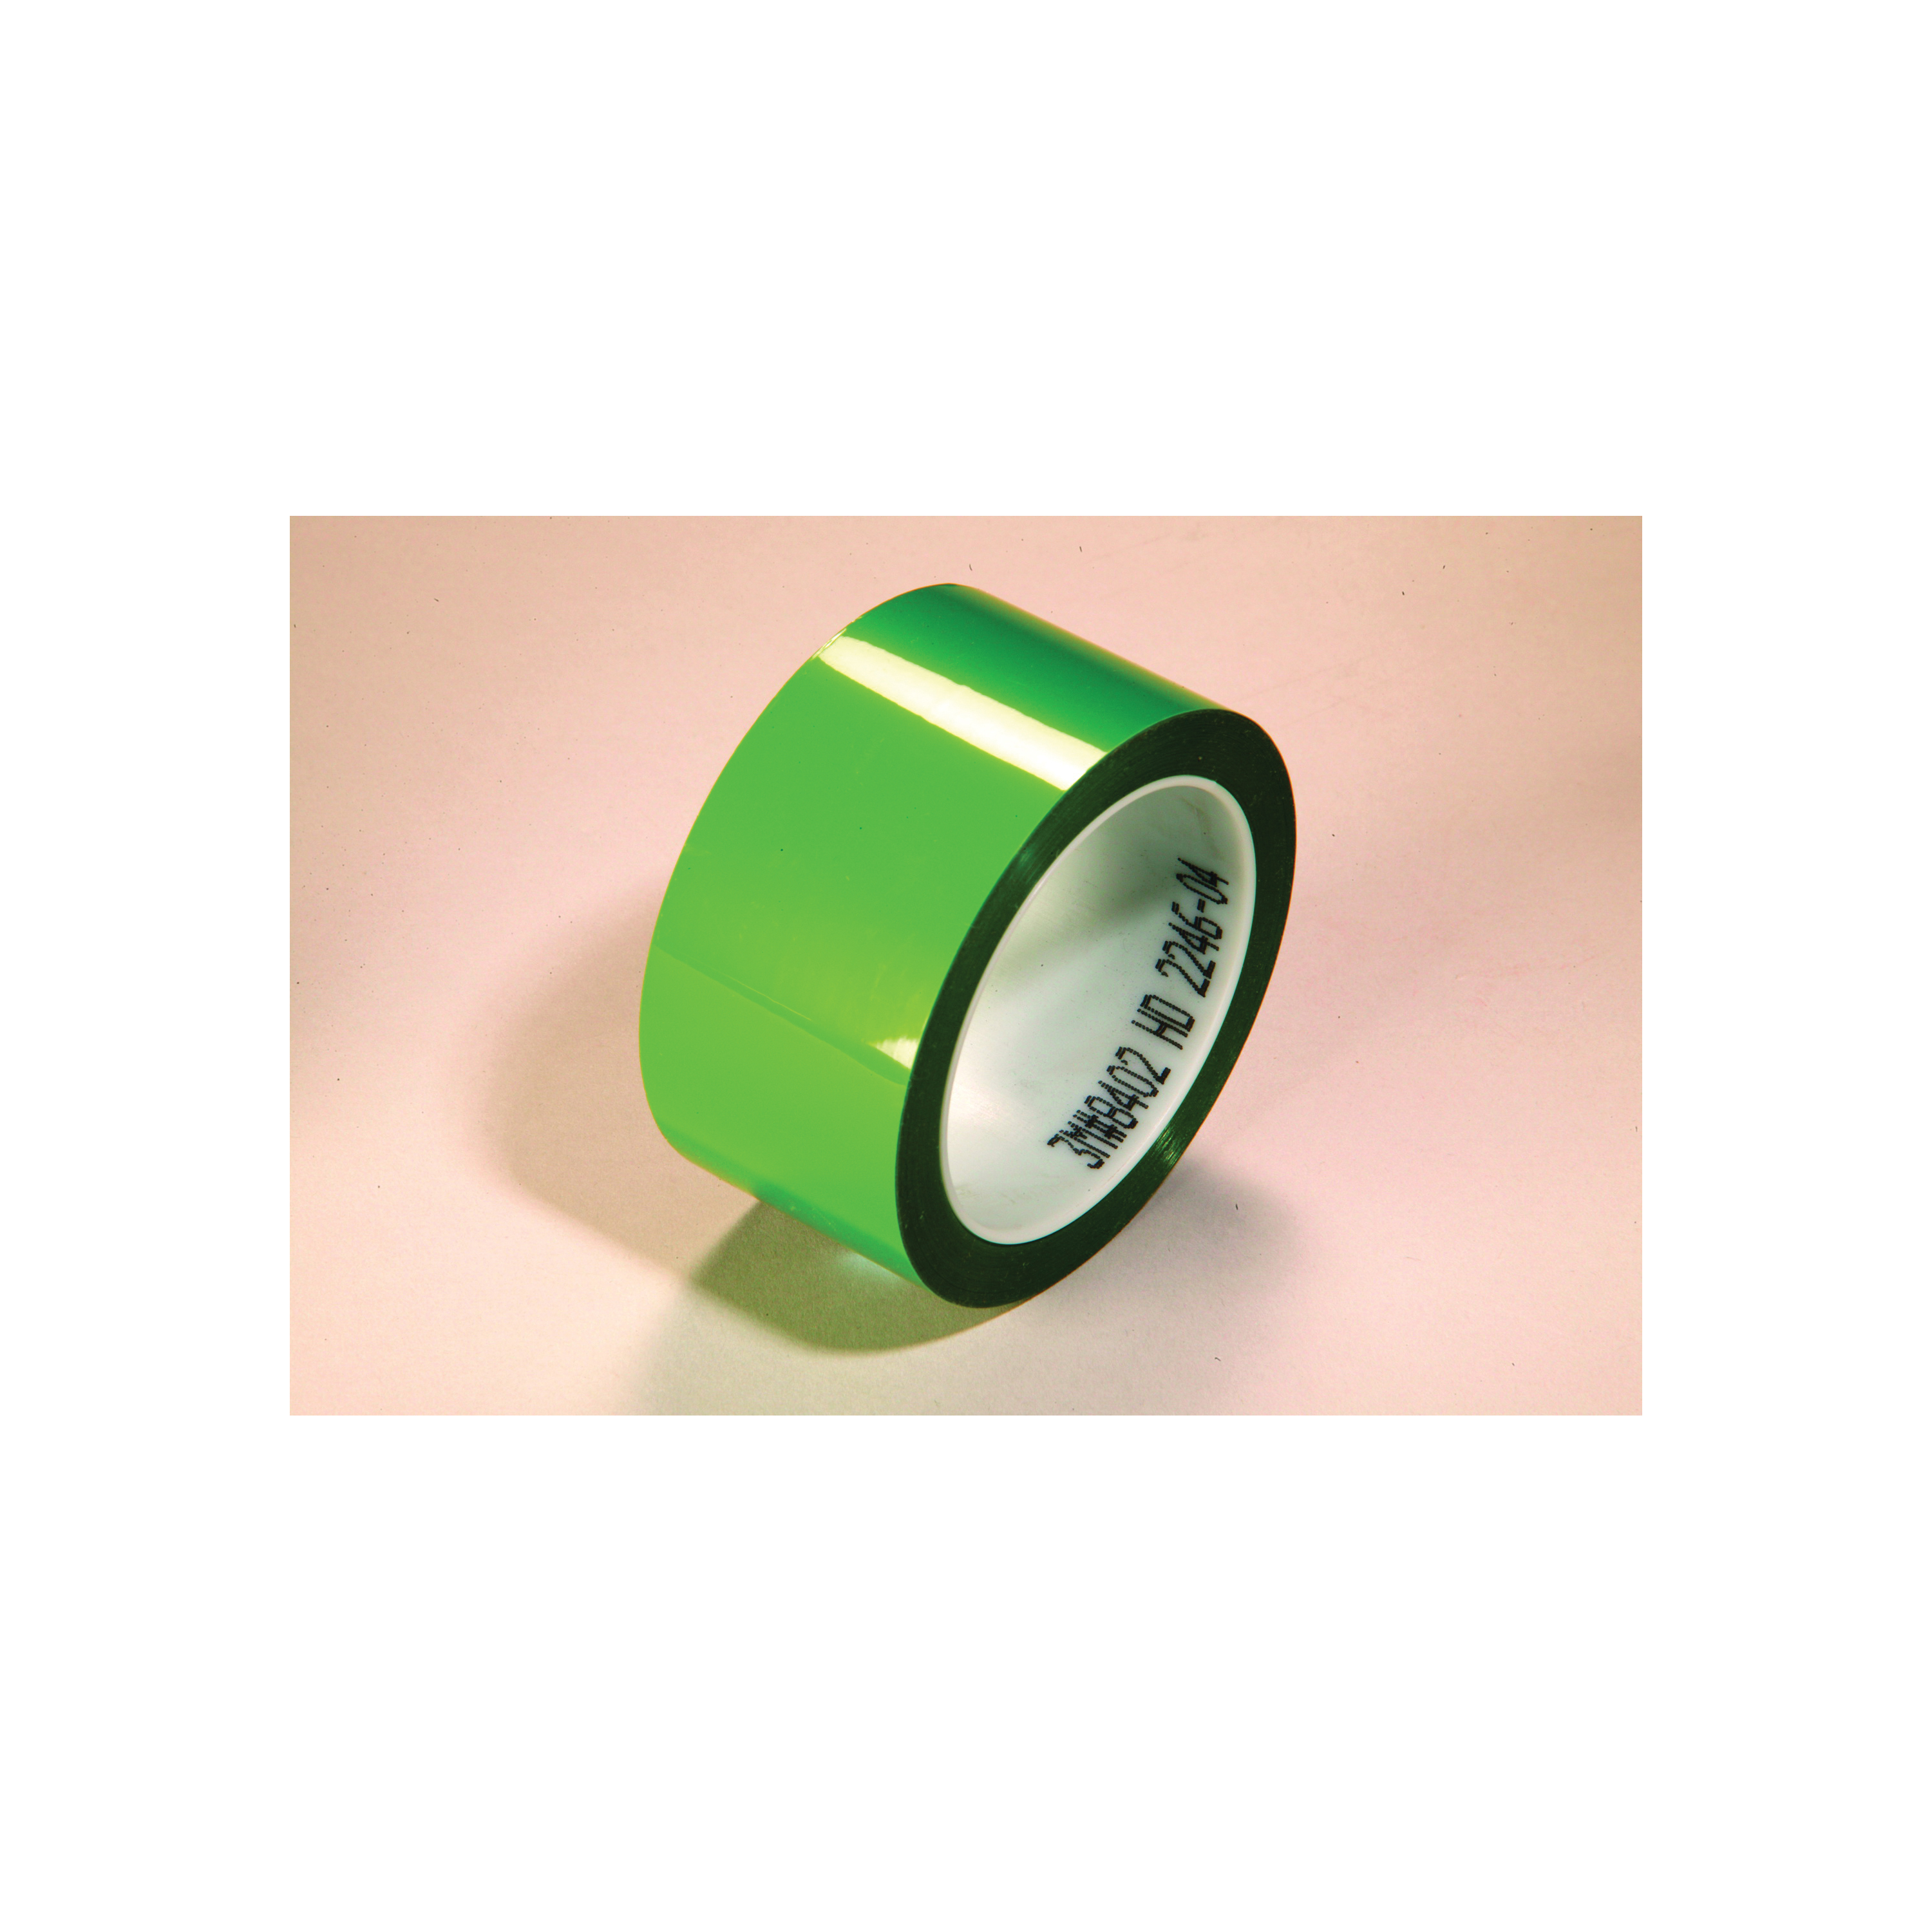 3M™ 021200-05689 Masking Tape, 72 yd L x 3 in W, 1.9 mil THK, Silicon Adhesive, Polyester Backing